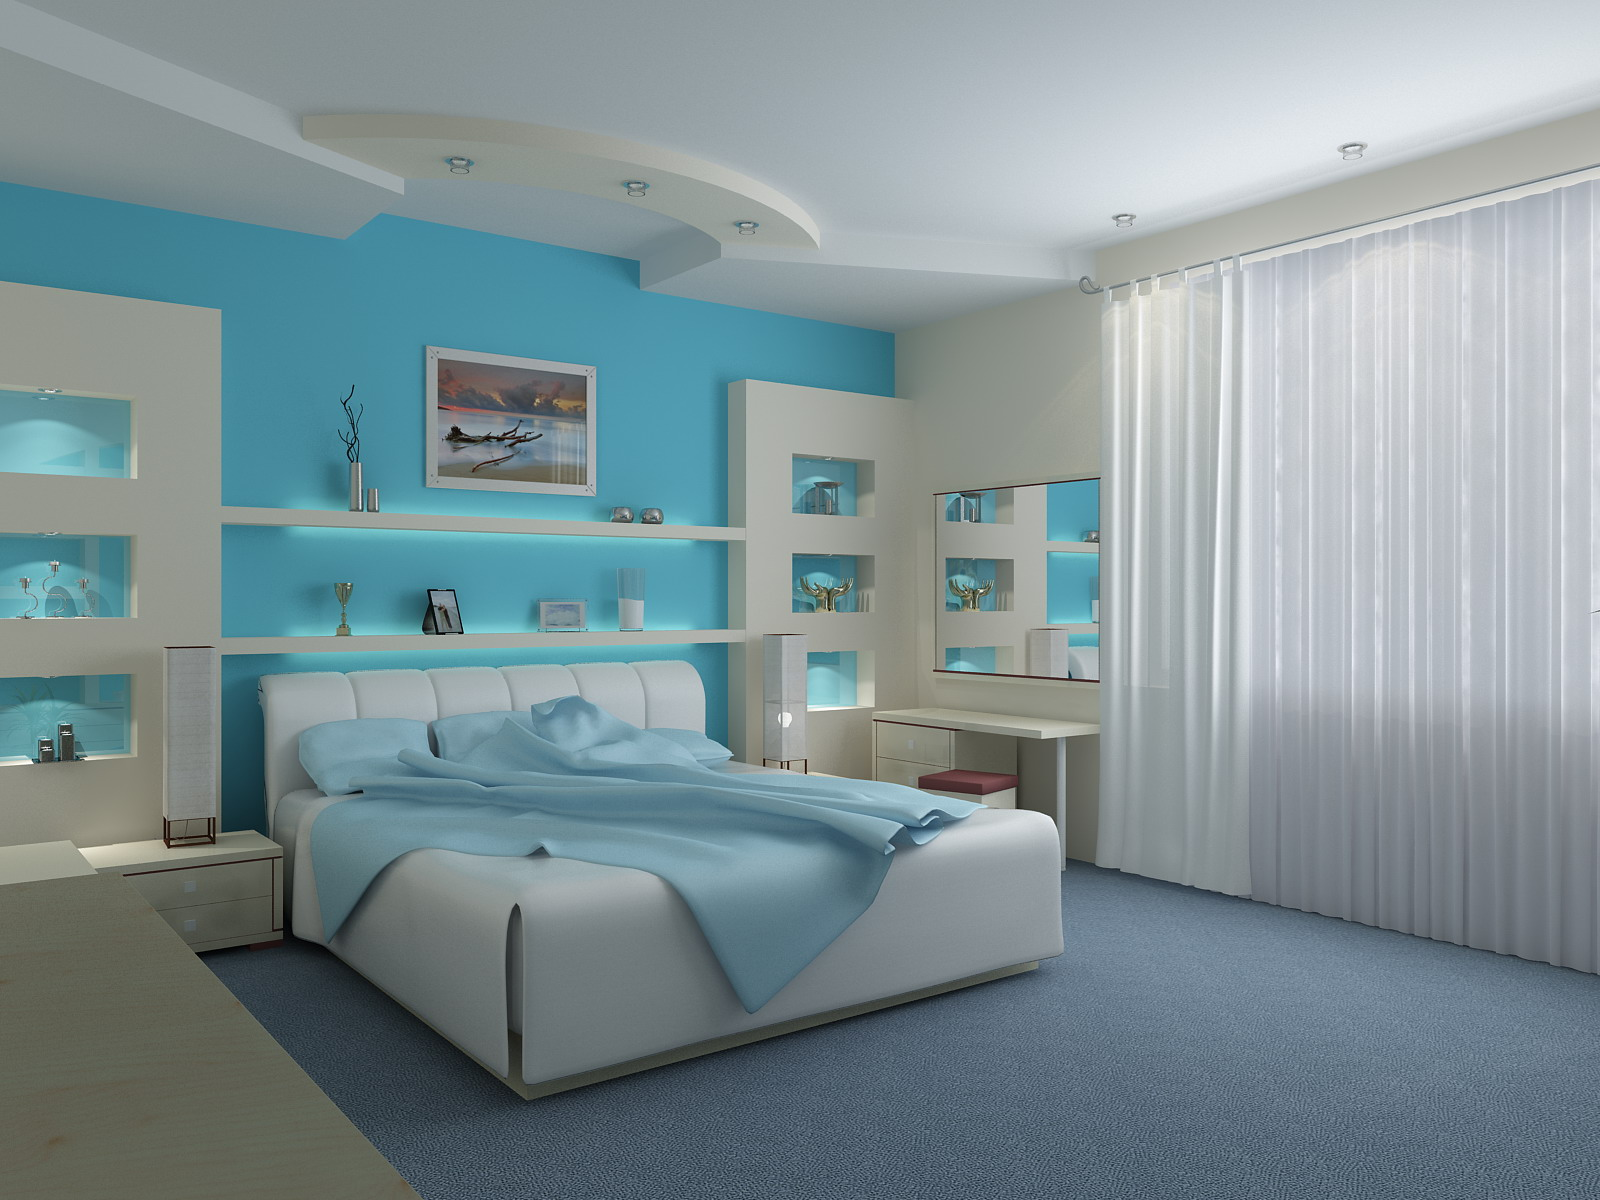 Feng shui bedroom colors for perfect look interior design for Bedroom designs and colors